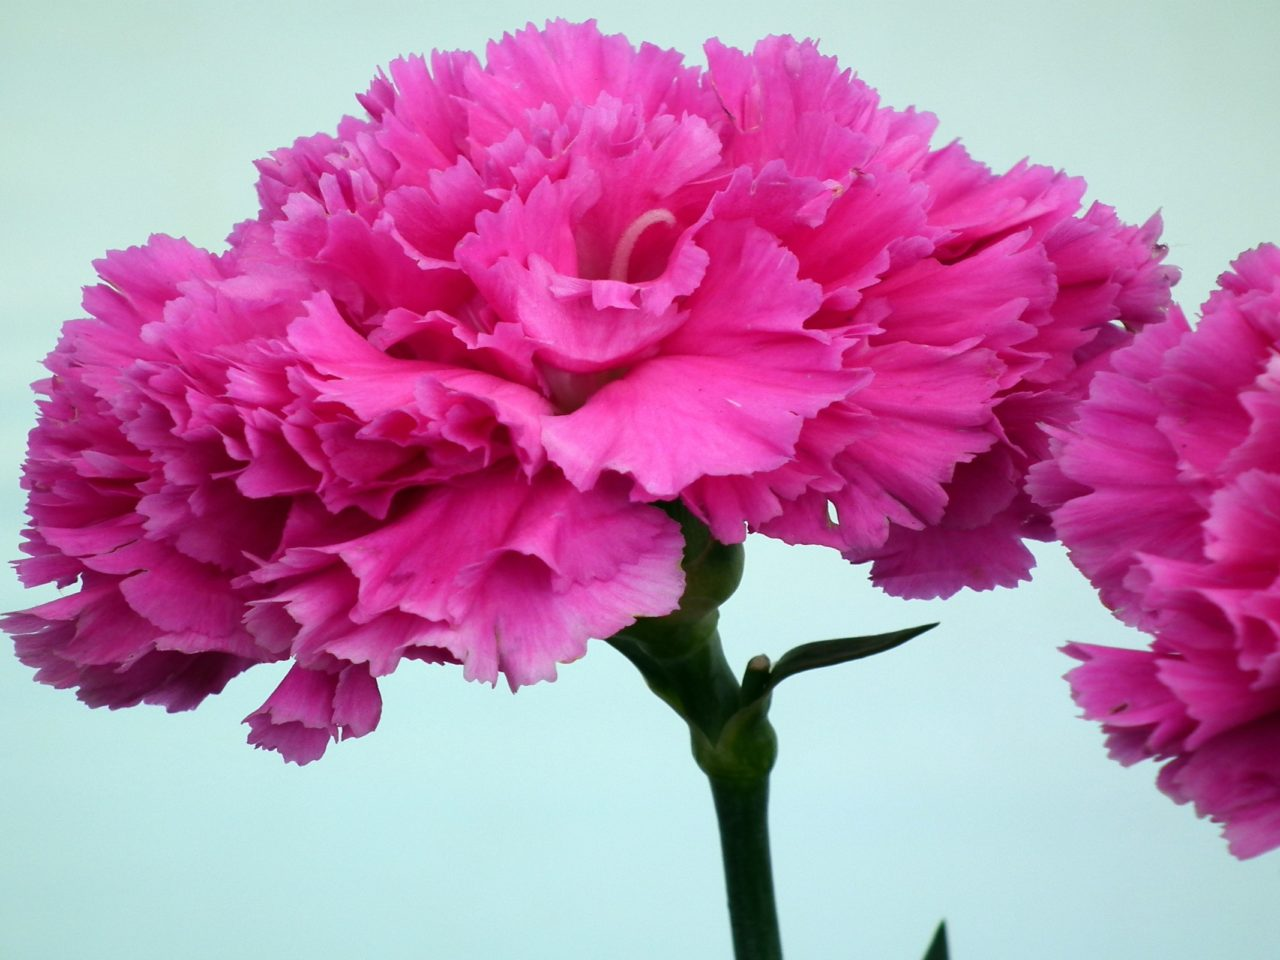 Hot Pink Carnation Flower  Wallpapers13com